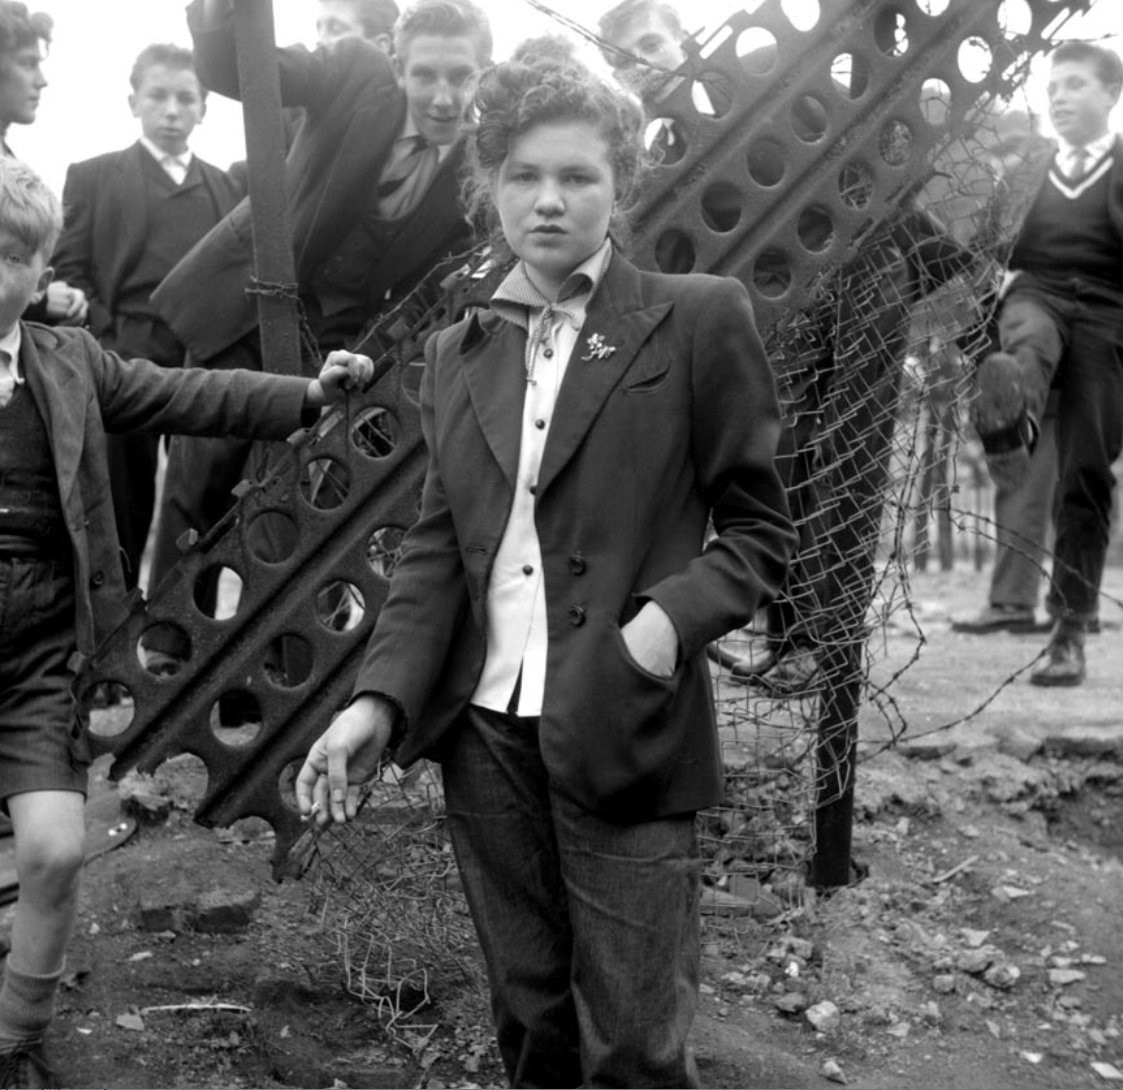 Teddy Girls The Style Subculture That Time Forgot Another